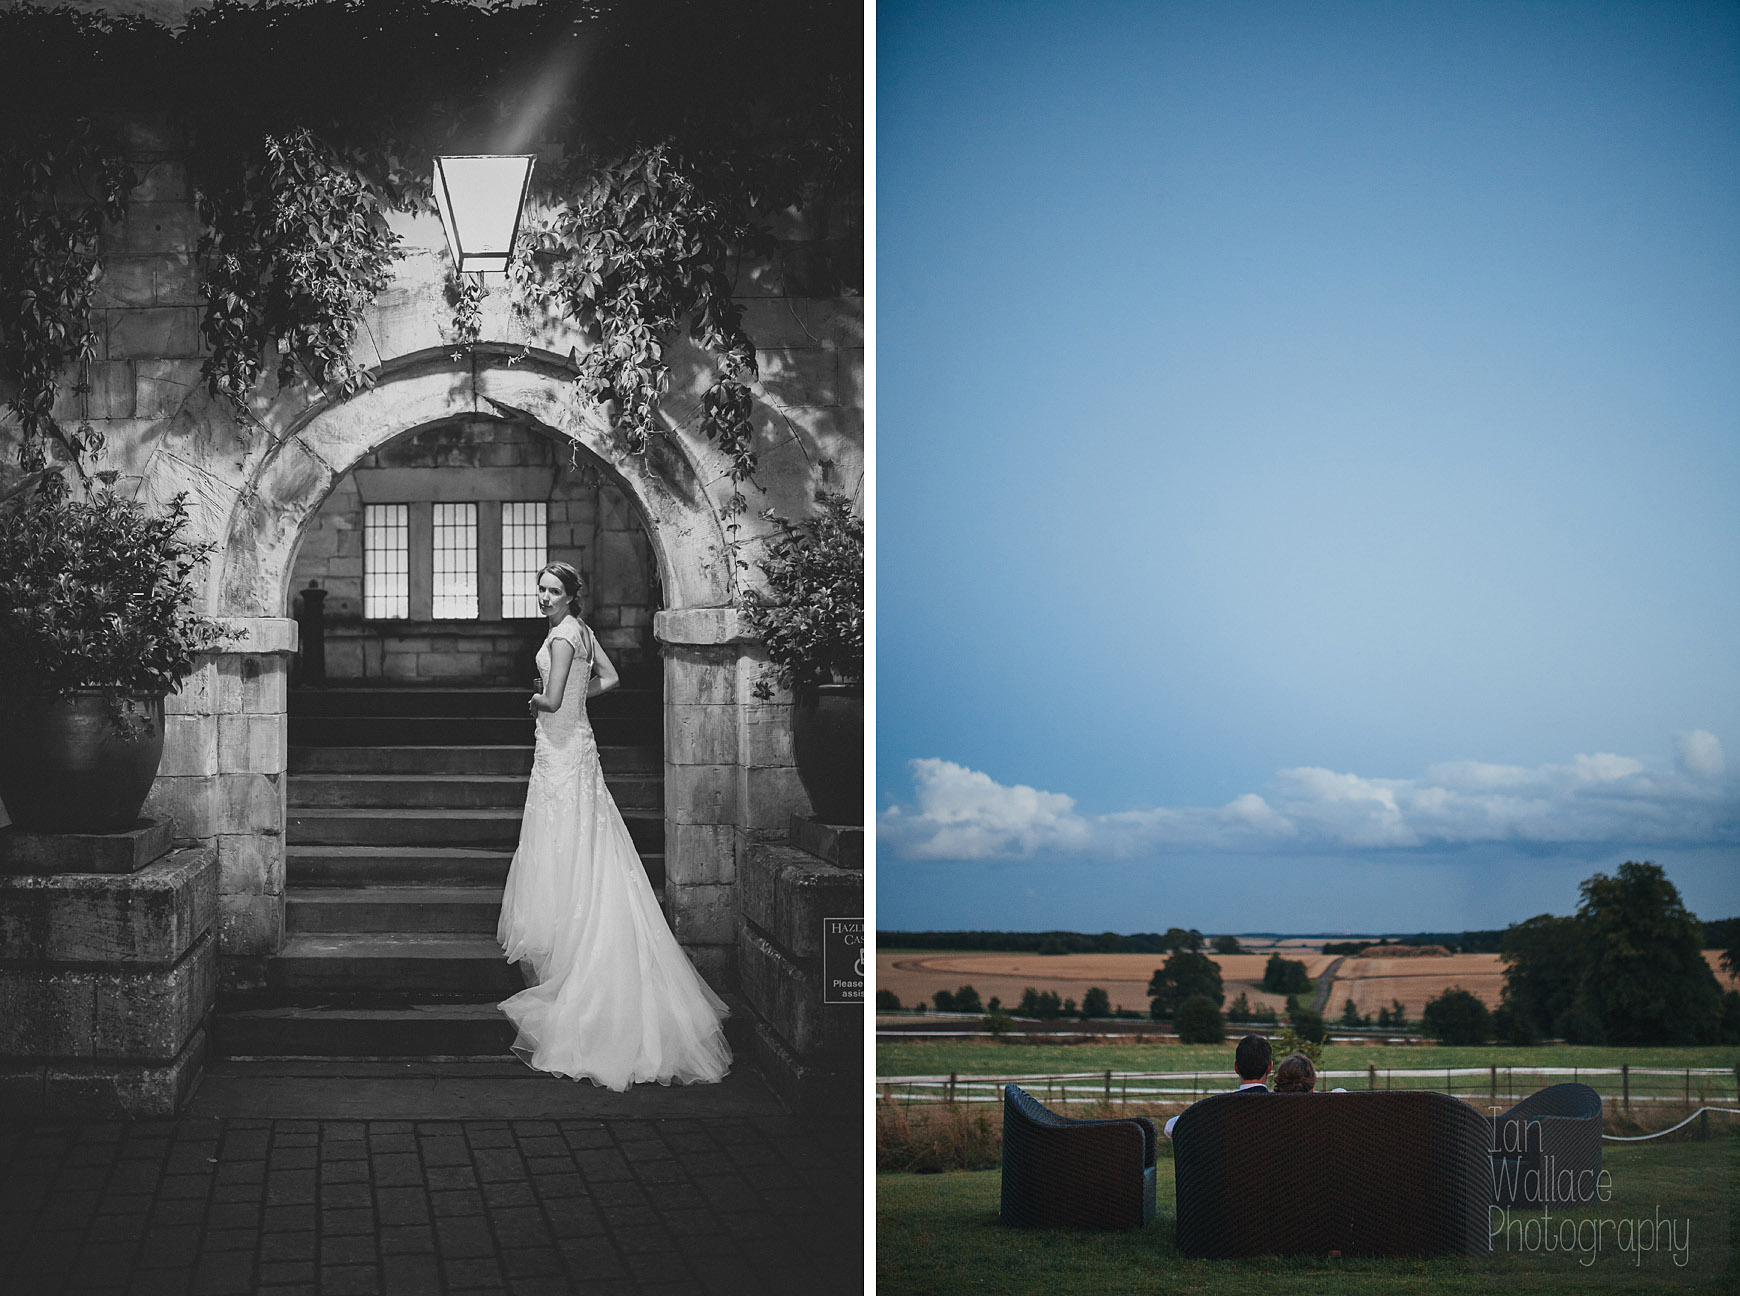 Portraits of bride and groom at dusk.